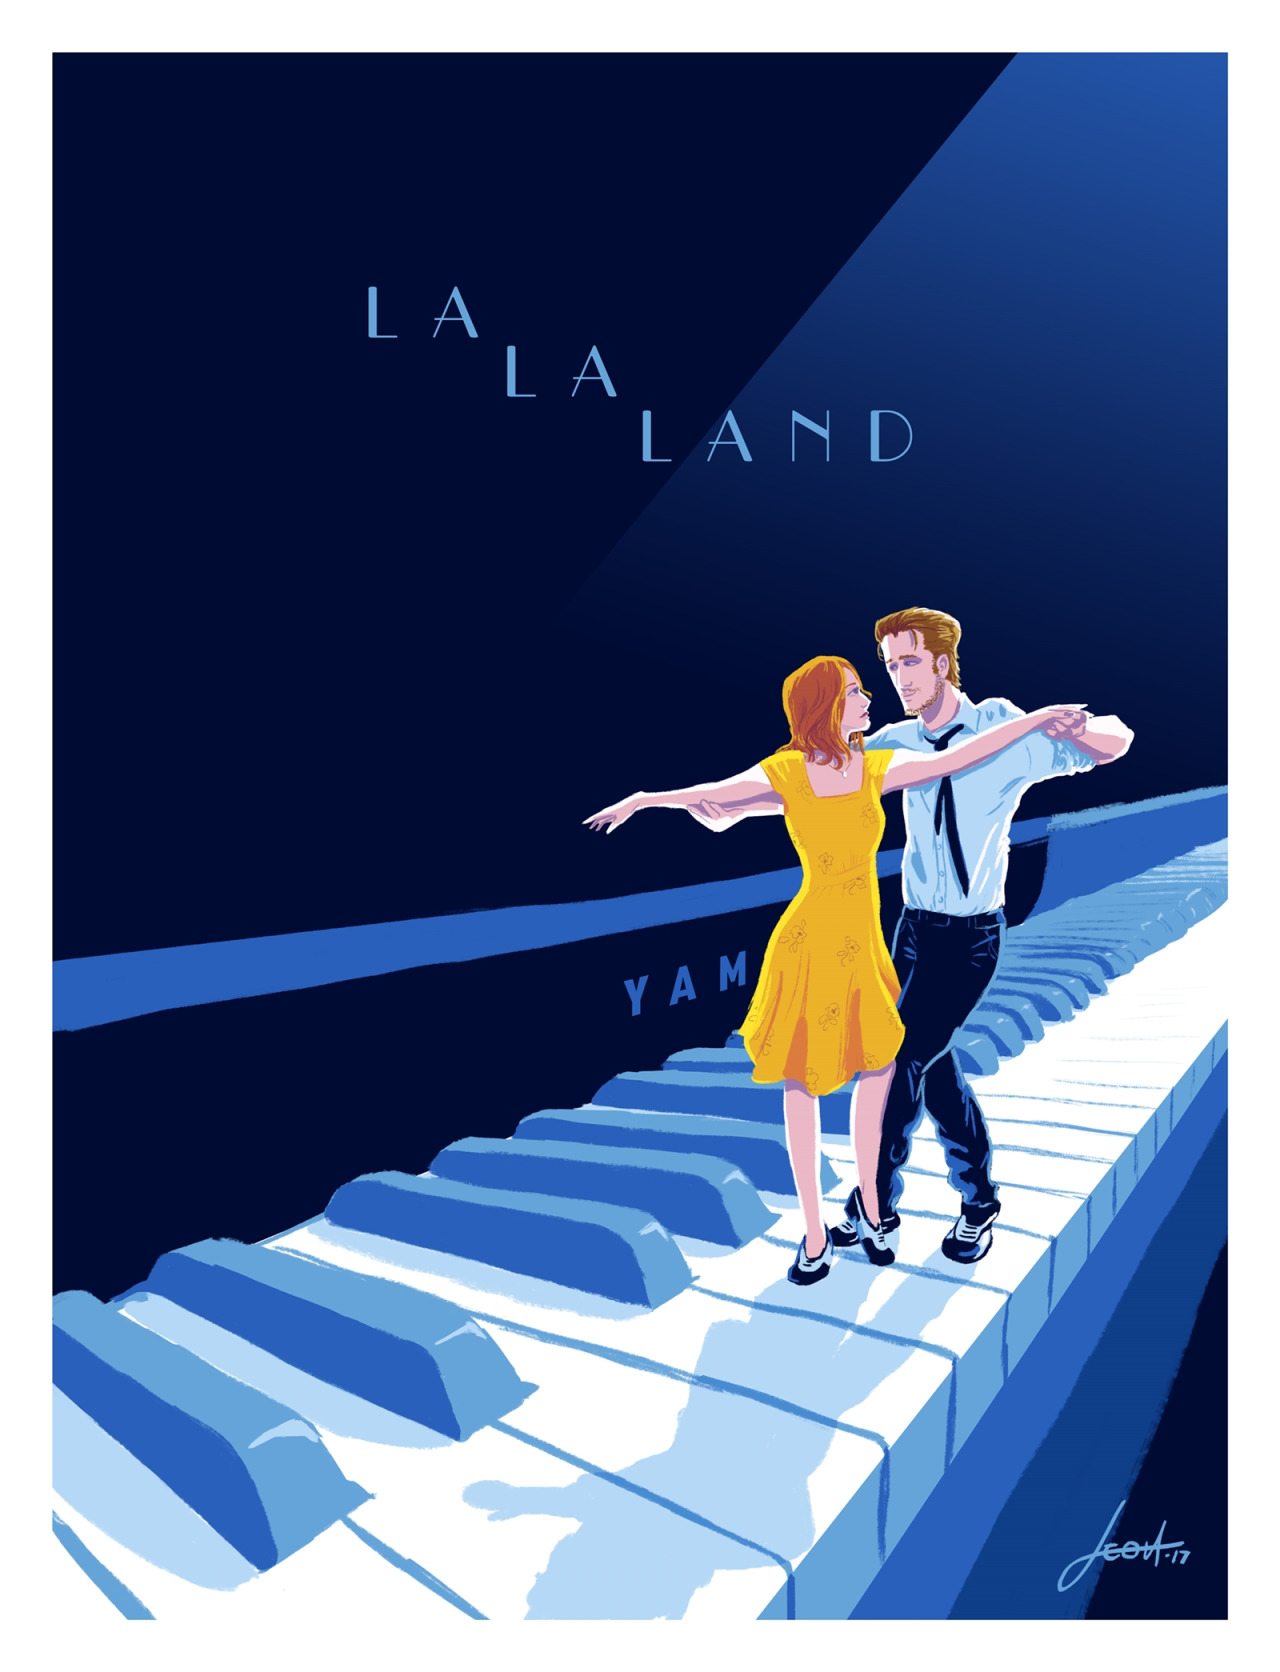 La La Land In Concert Tour Dates